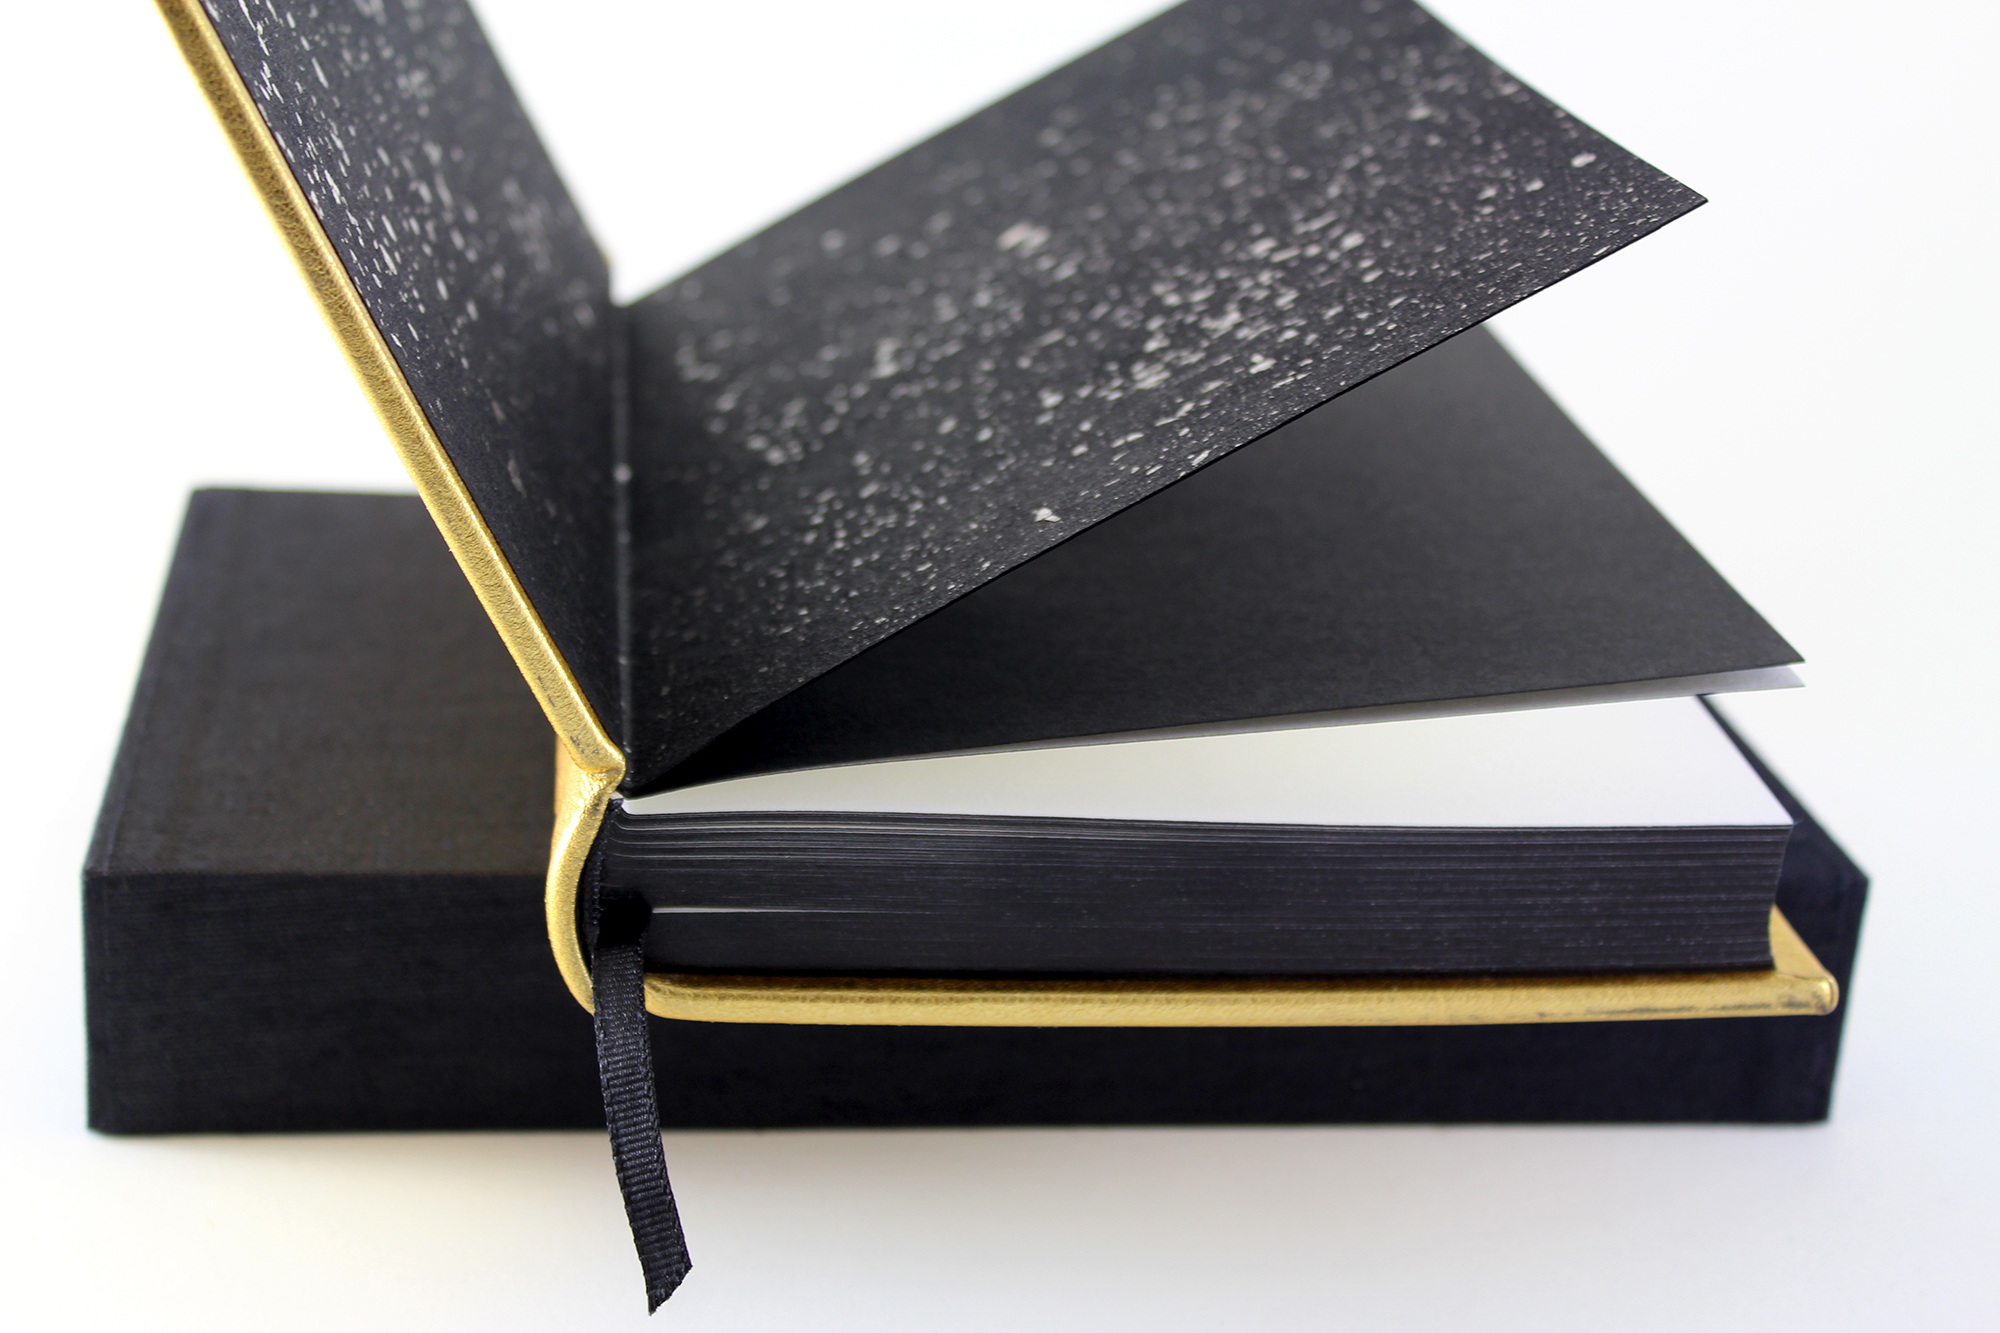 A glimpse of the handmade Cave endpapers and blackened edges on the fine edition